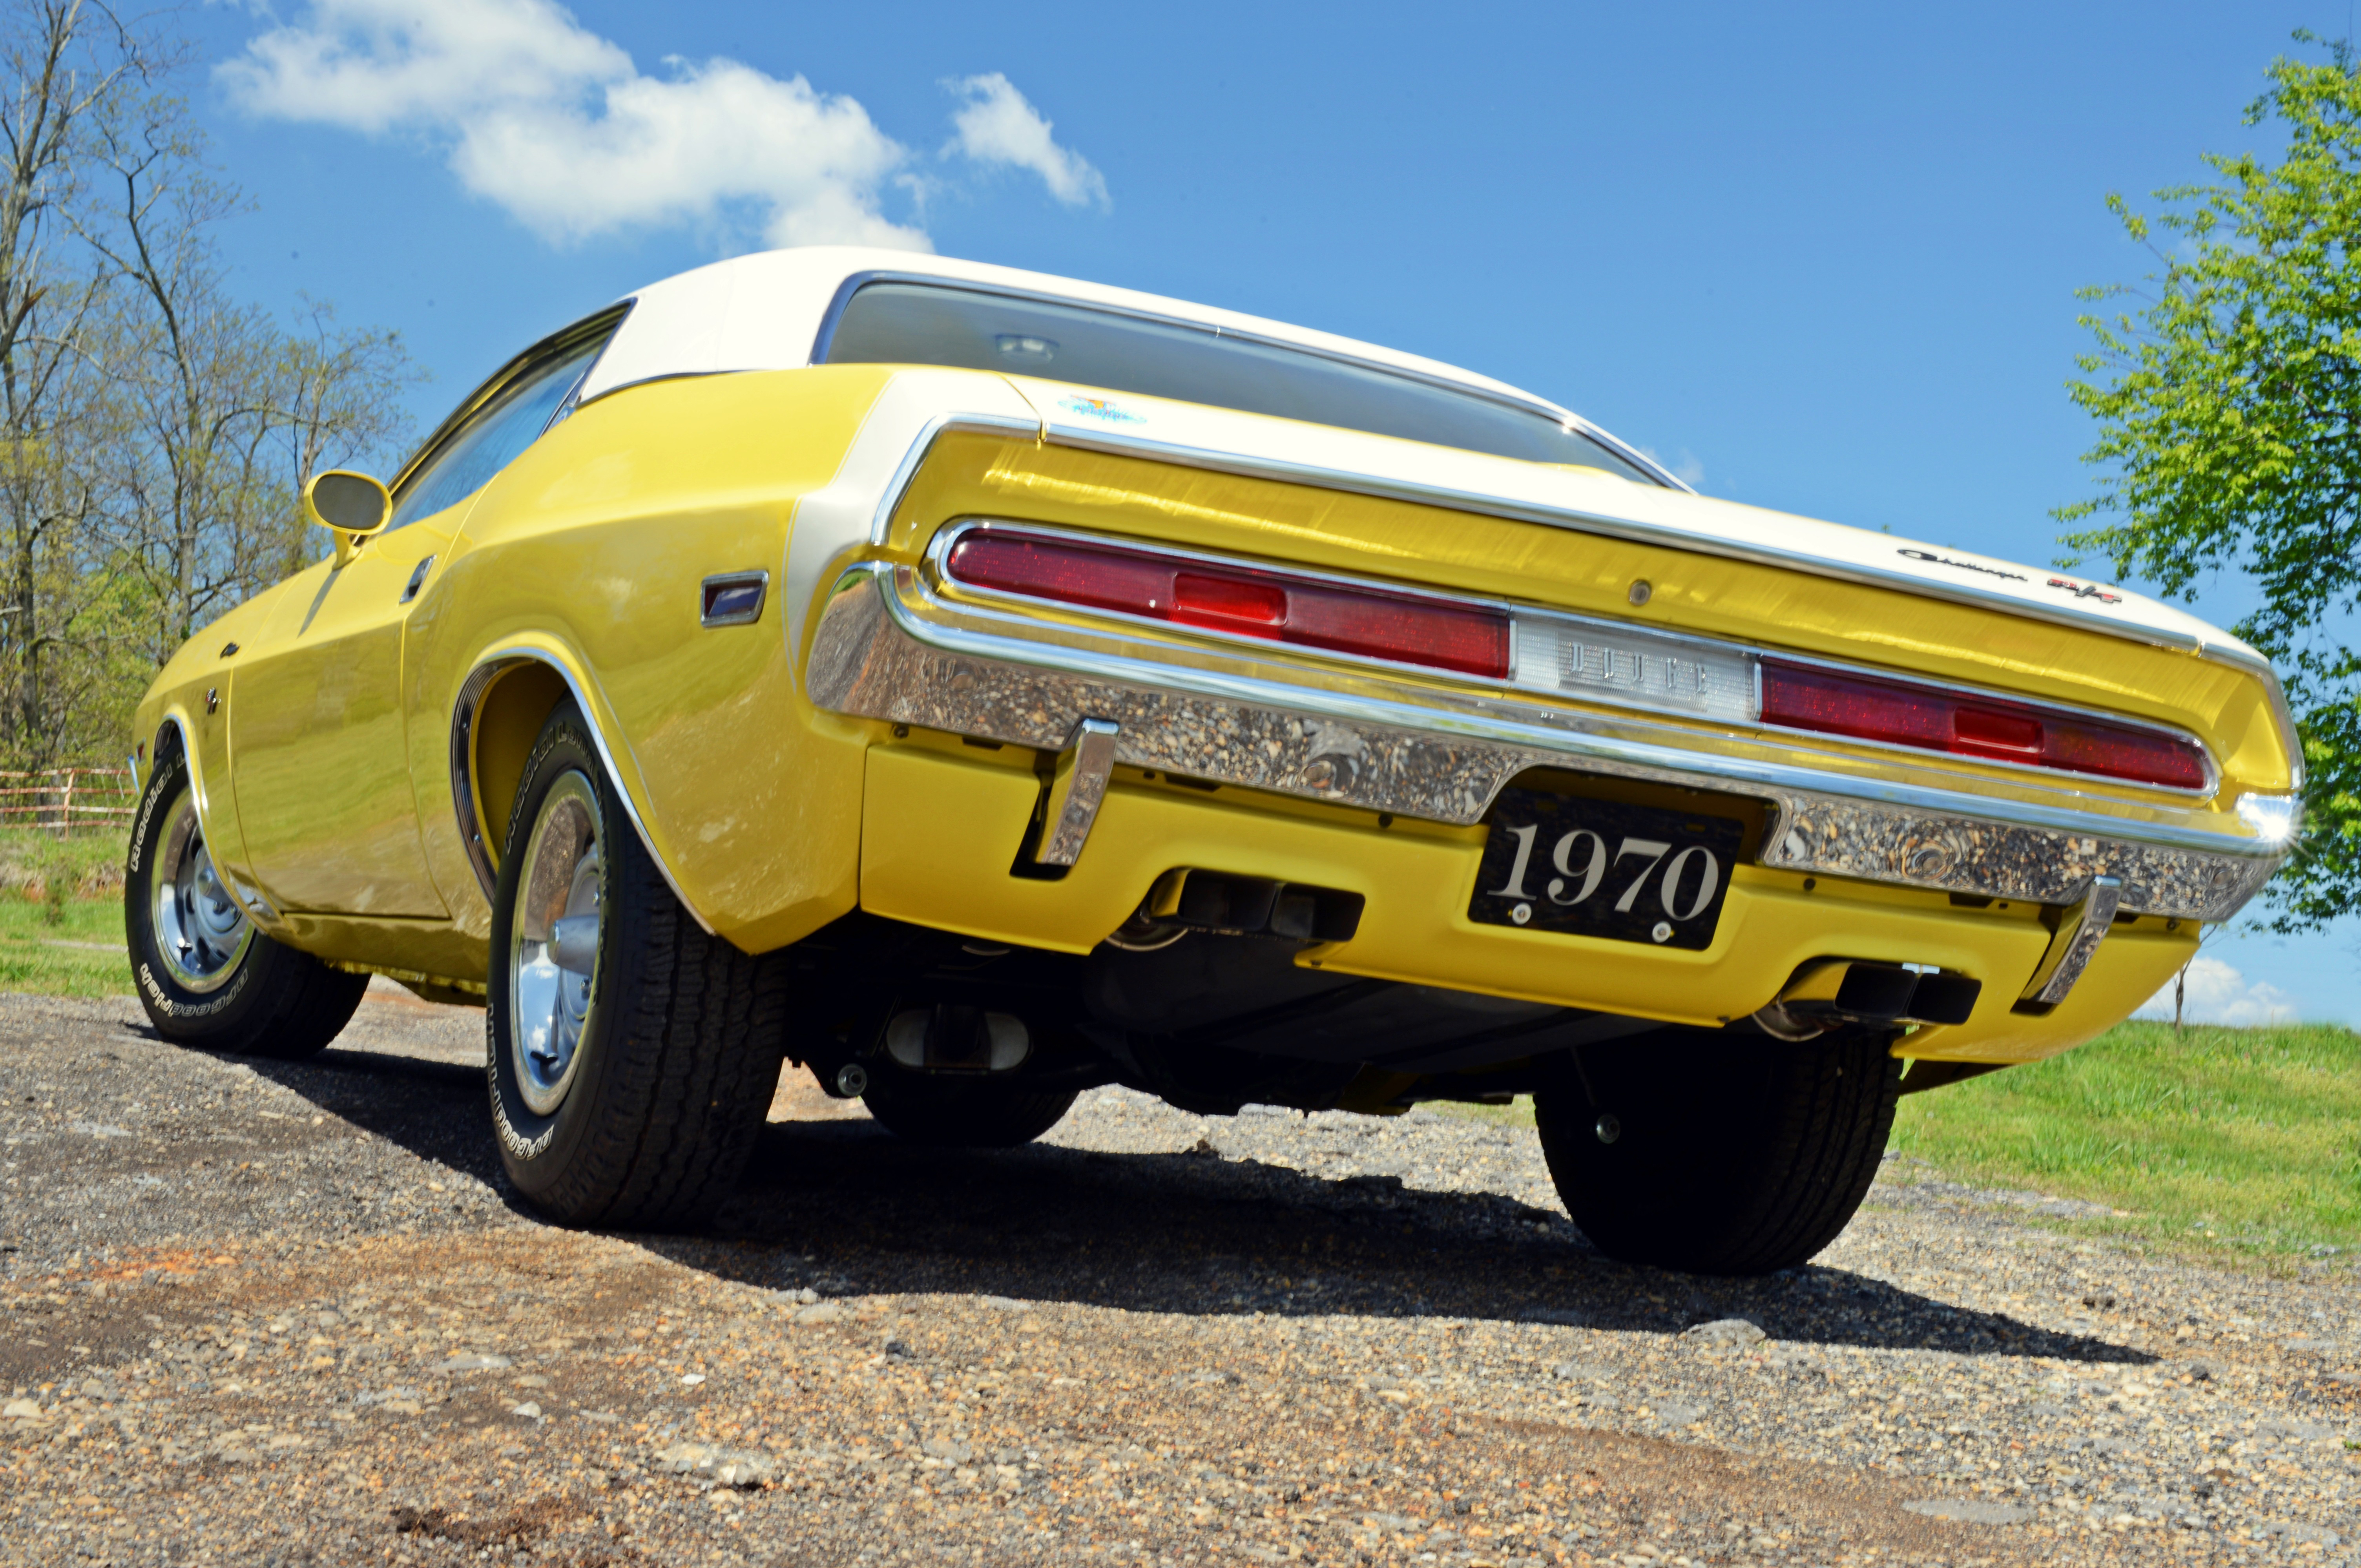 Bill Stone's FY1 Top Banana Yellow Challenger was not only born with the cool combination of a white interior and top; it was also built with the Super Track Pack option. Checking the A34 box got you a bulletproof Dana out back stuffed with 4.10 gears, along with power disc brakes up front.